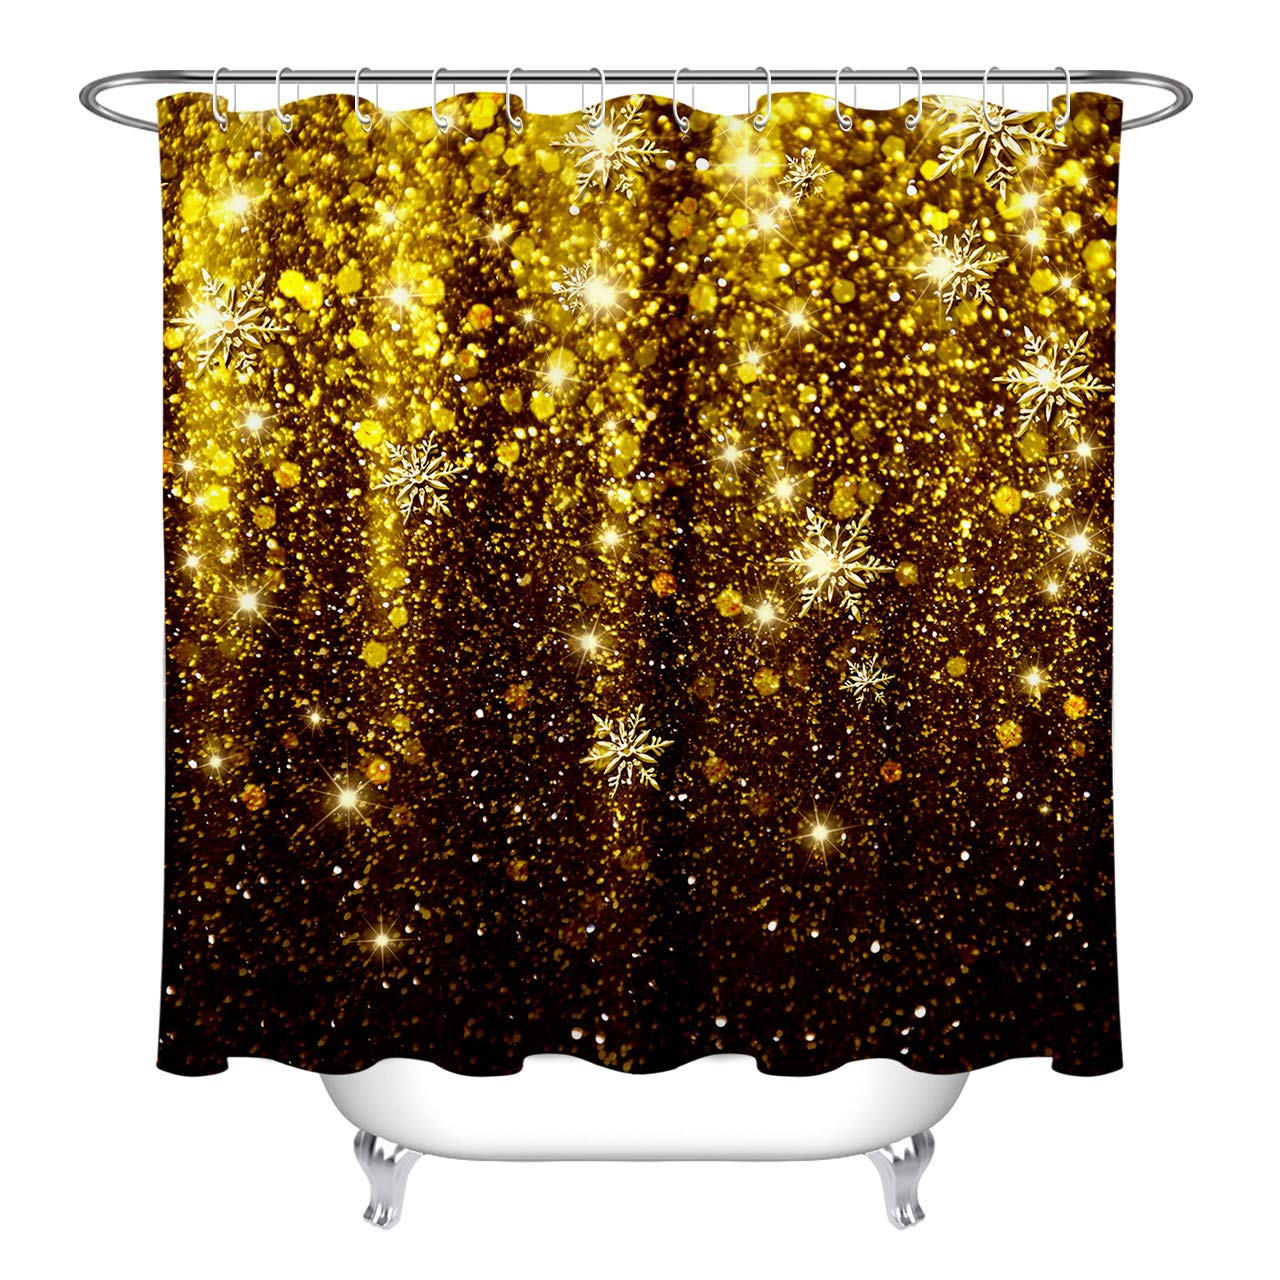 LB Black And Gold Glitter Shower Curtain With Golden Snowflakes Holiday Party Decor Glam Curtains For BathroomWaterproof Mildew Resistant Fabric